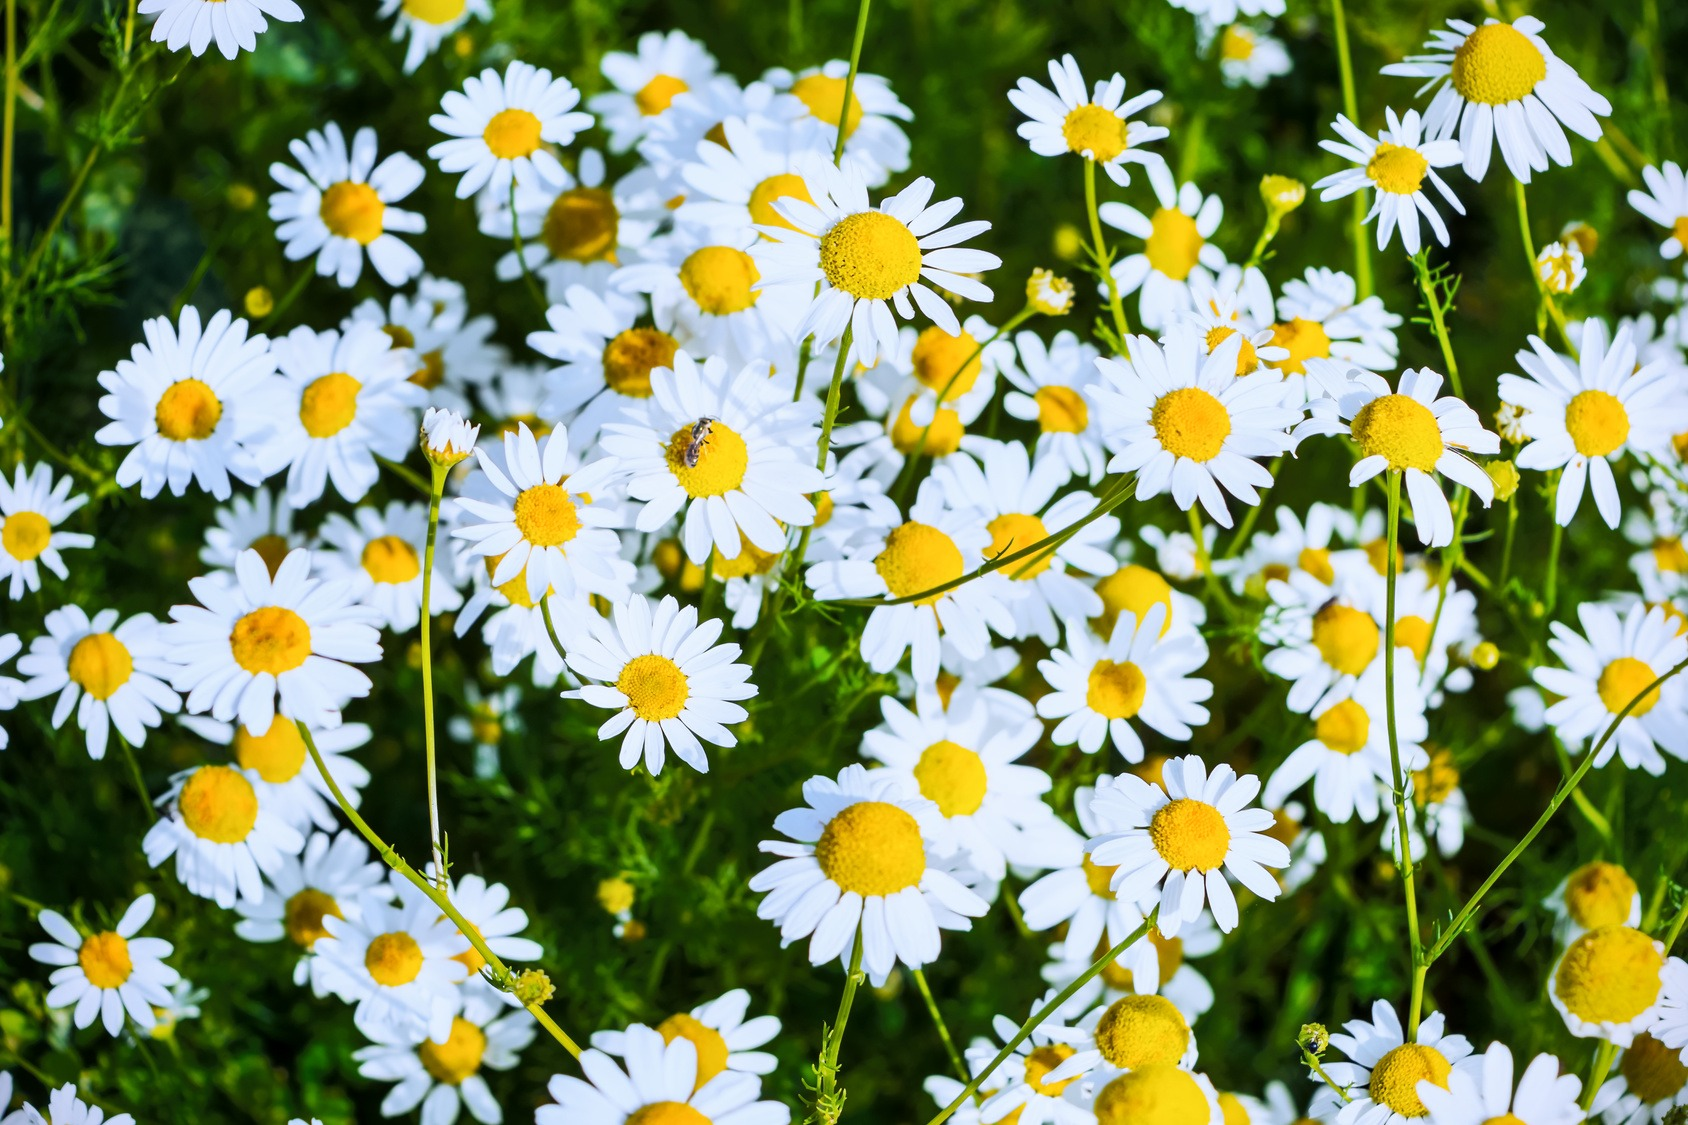 Summer field of blooming daisies. Beautiful landscape with daisies in the sunlight. White flowers in the summer meadow.